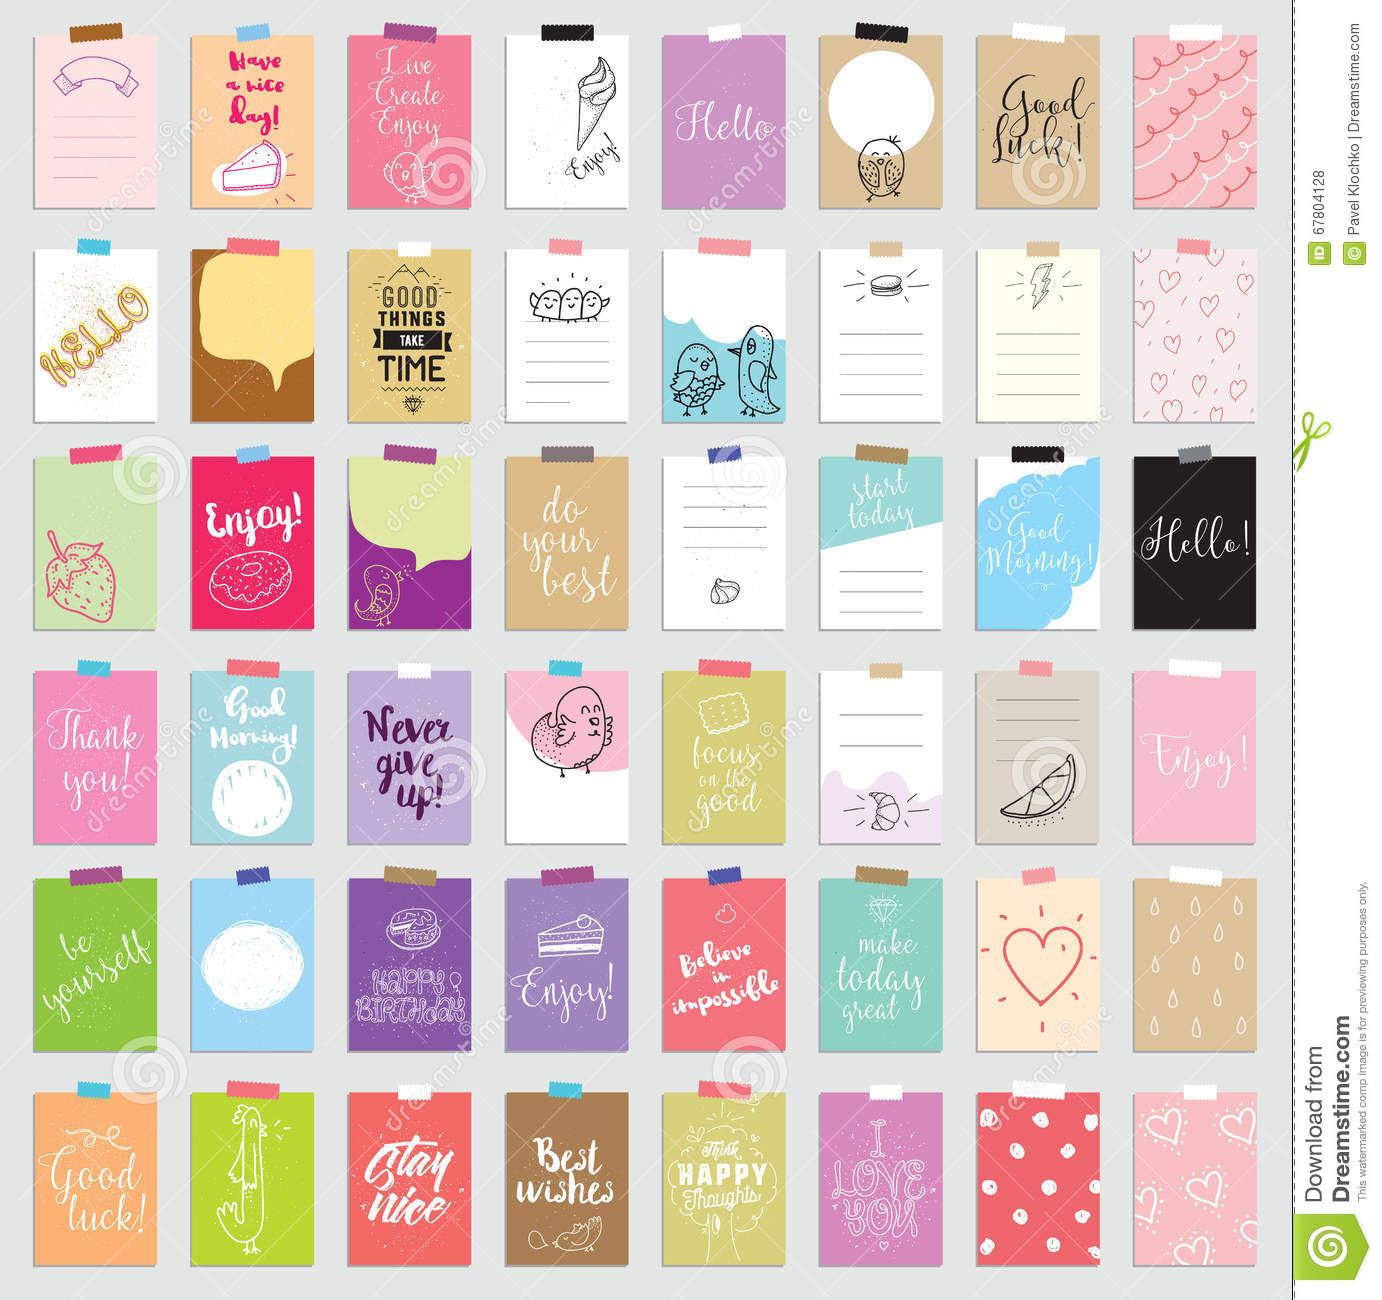 Set of 48 creative journaling cards. Vector illustration. Template for greeting scrapbooking, planner, congratulations